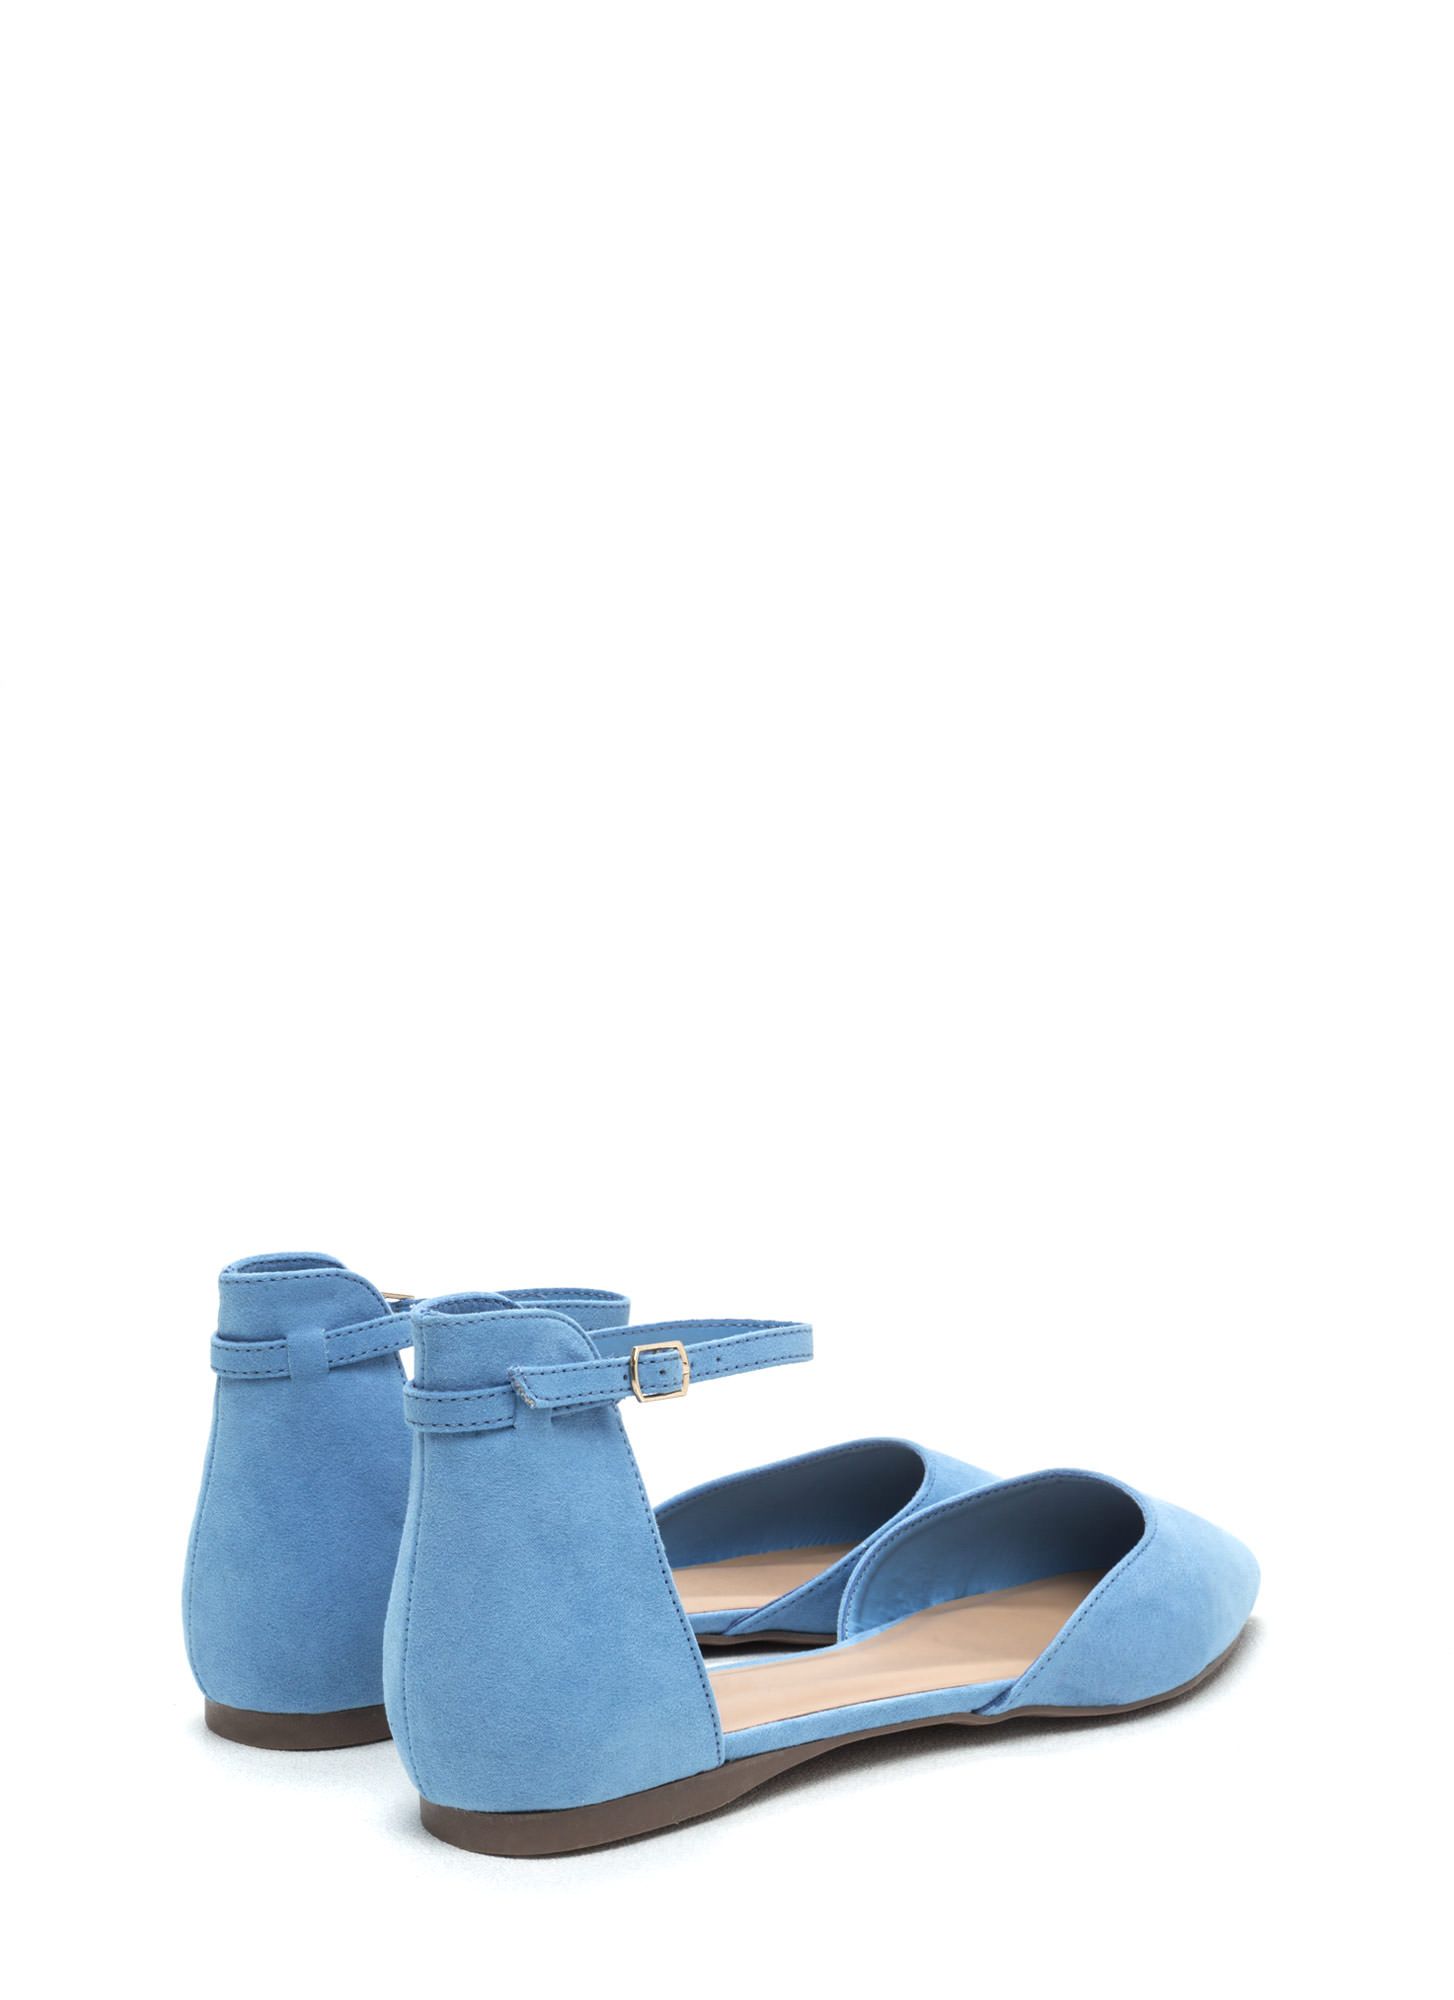 Day By Day D'Orsay Flats BLUE